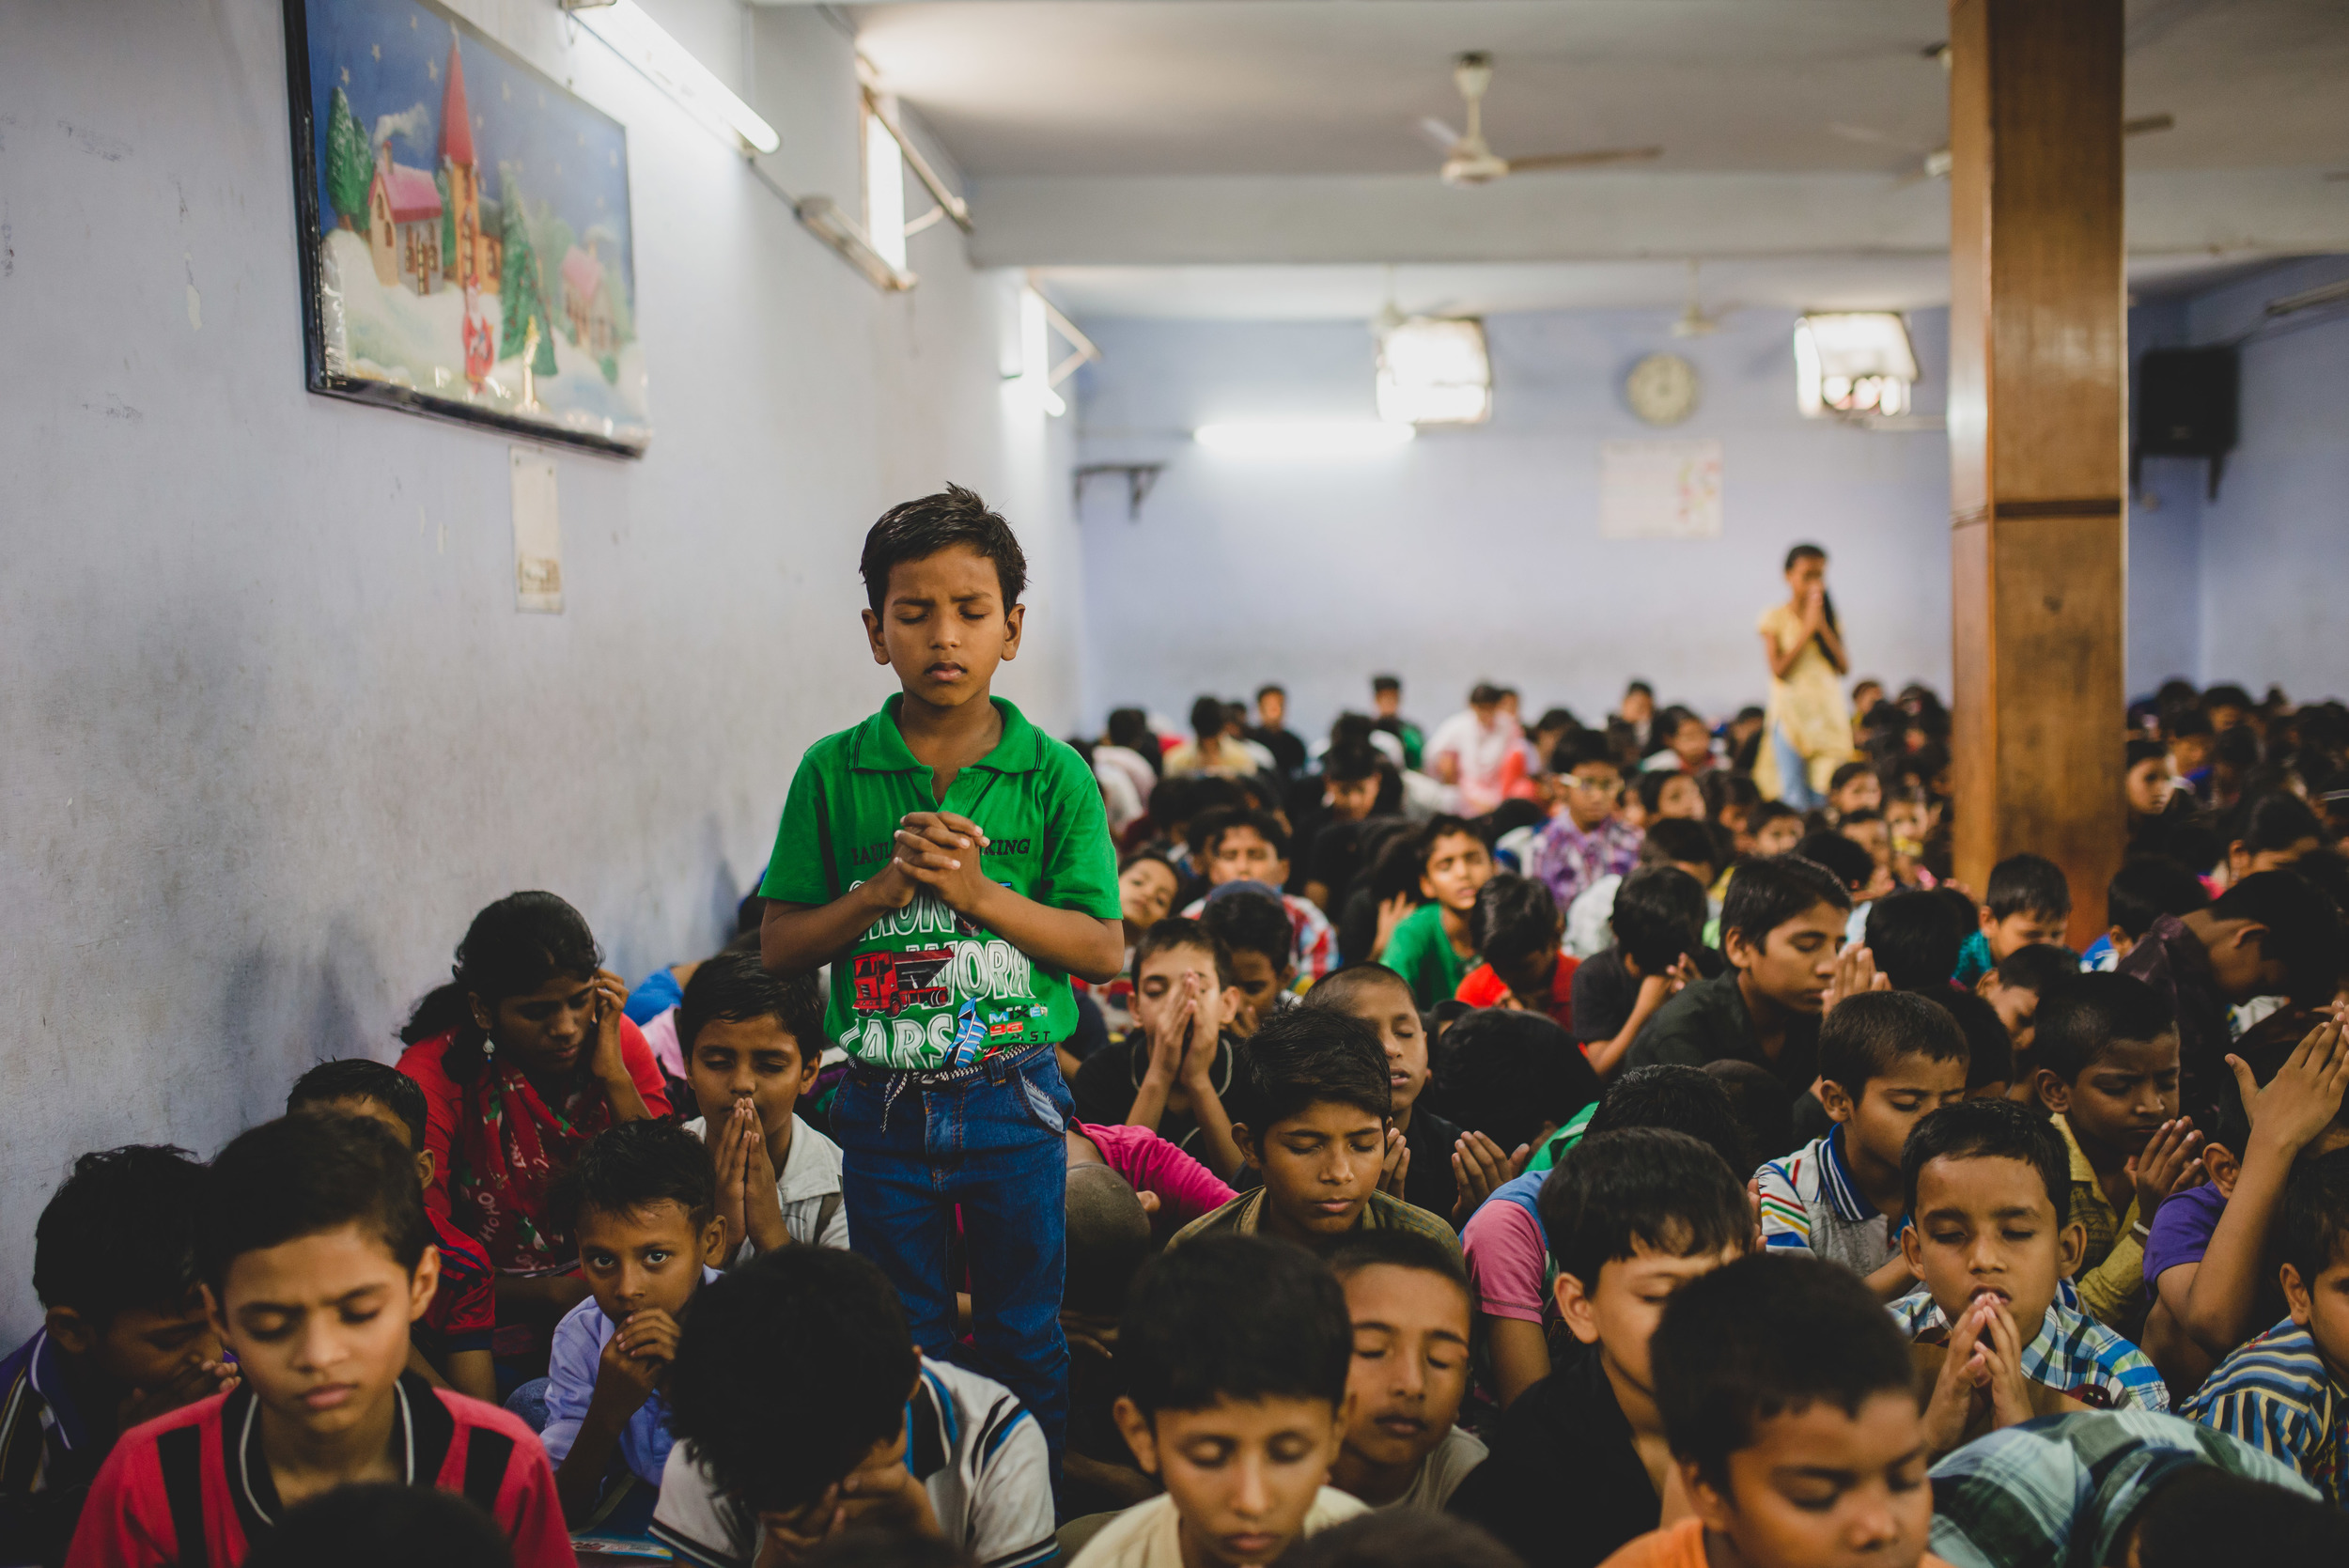 When we volunteered to help at a church's VBS we found 300+ children sitting on the floor in a non-air conditioned room for over 3 hours. There was no personal space, no accommodating seating, no temperature-controlled environment, and no hands-on activities. But those things did not prevent the children from expressing their love for God during a time of worship and prayer. Responding to the worship songs, some children rose to their feet while others fell to their knees. With eyes closed and hand clasped, the children poured out their prayers and praises to God.